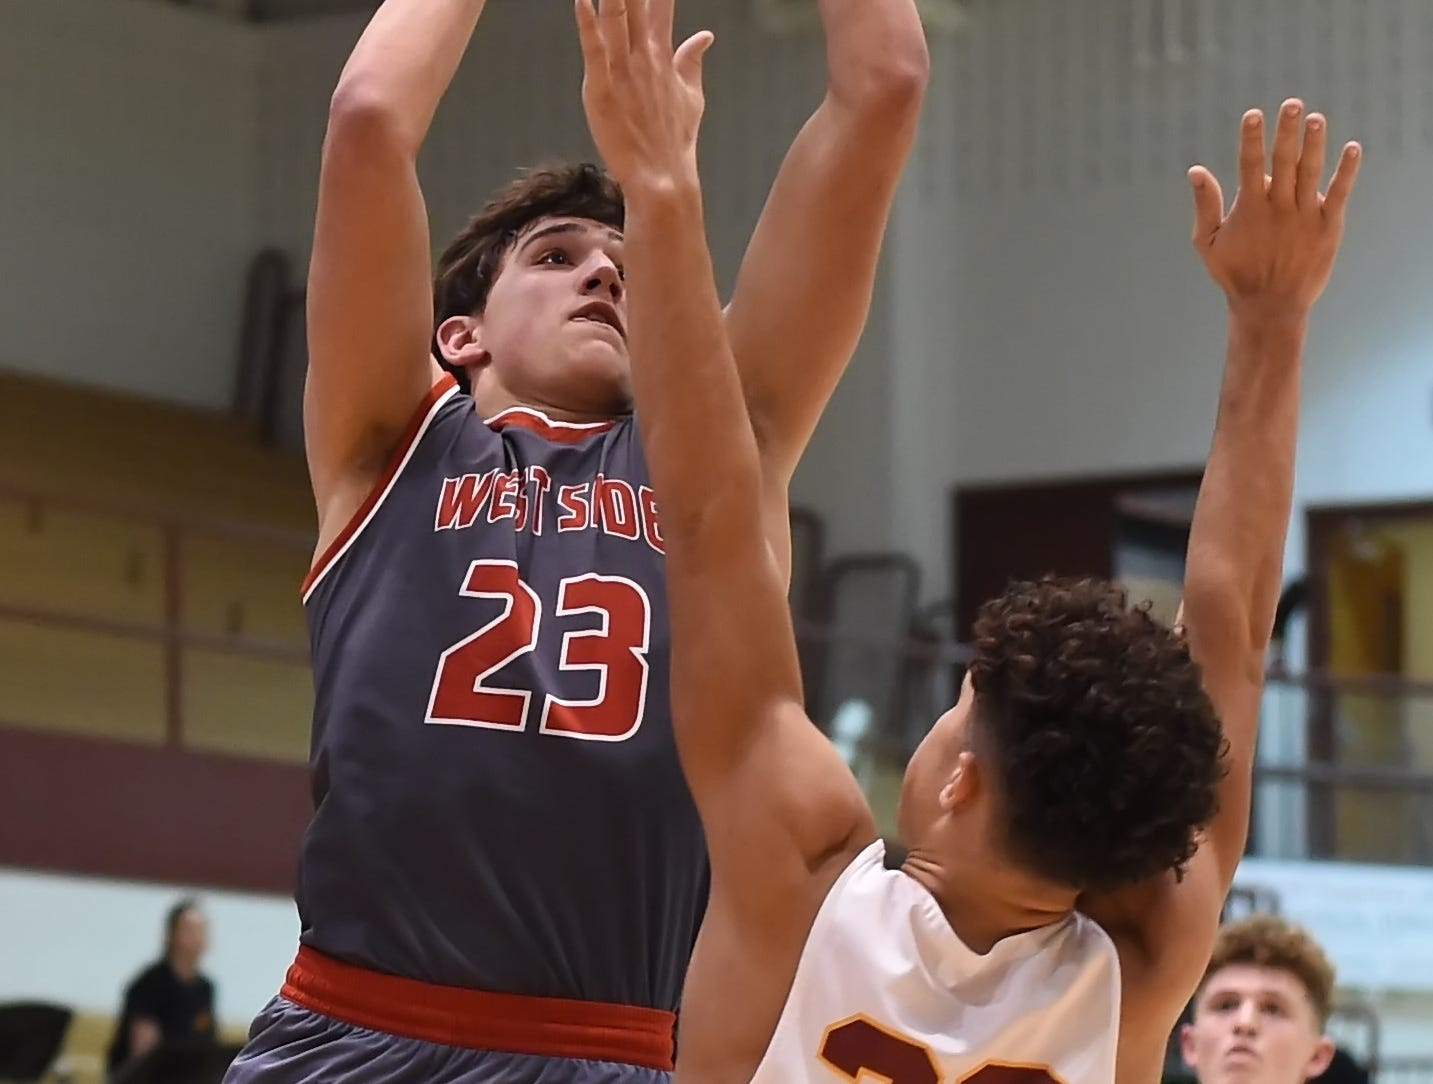 Scenes from Thursday night basketball action as the Mavericks of McCutcheon host the West Side Red Devils. Yanni Karlaftis.